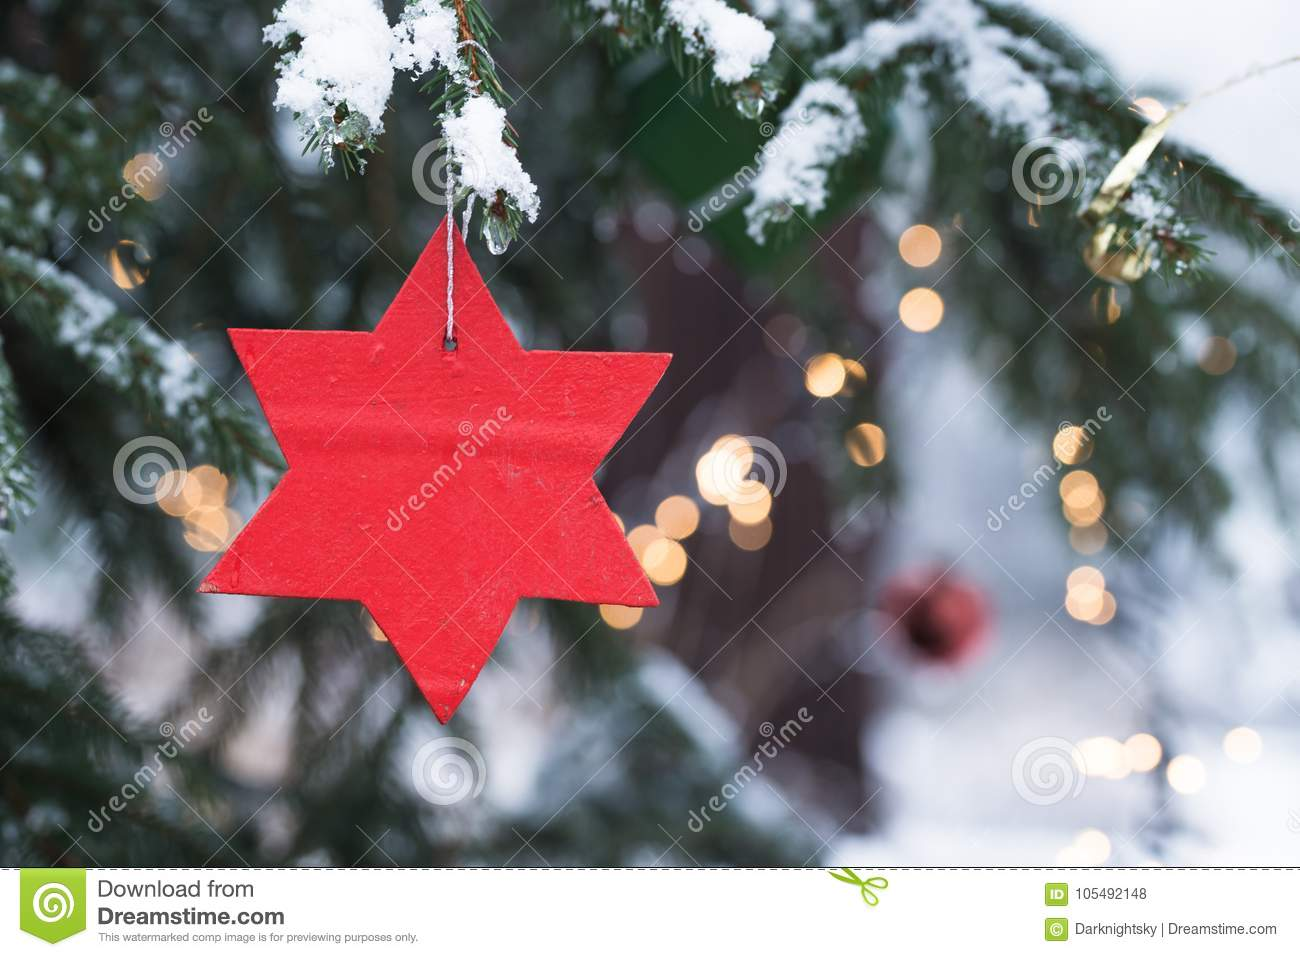 Winter Season Christmas Tree With Snow And Candles Stock Photo